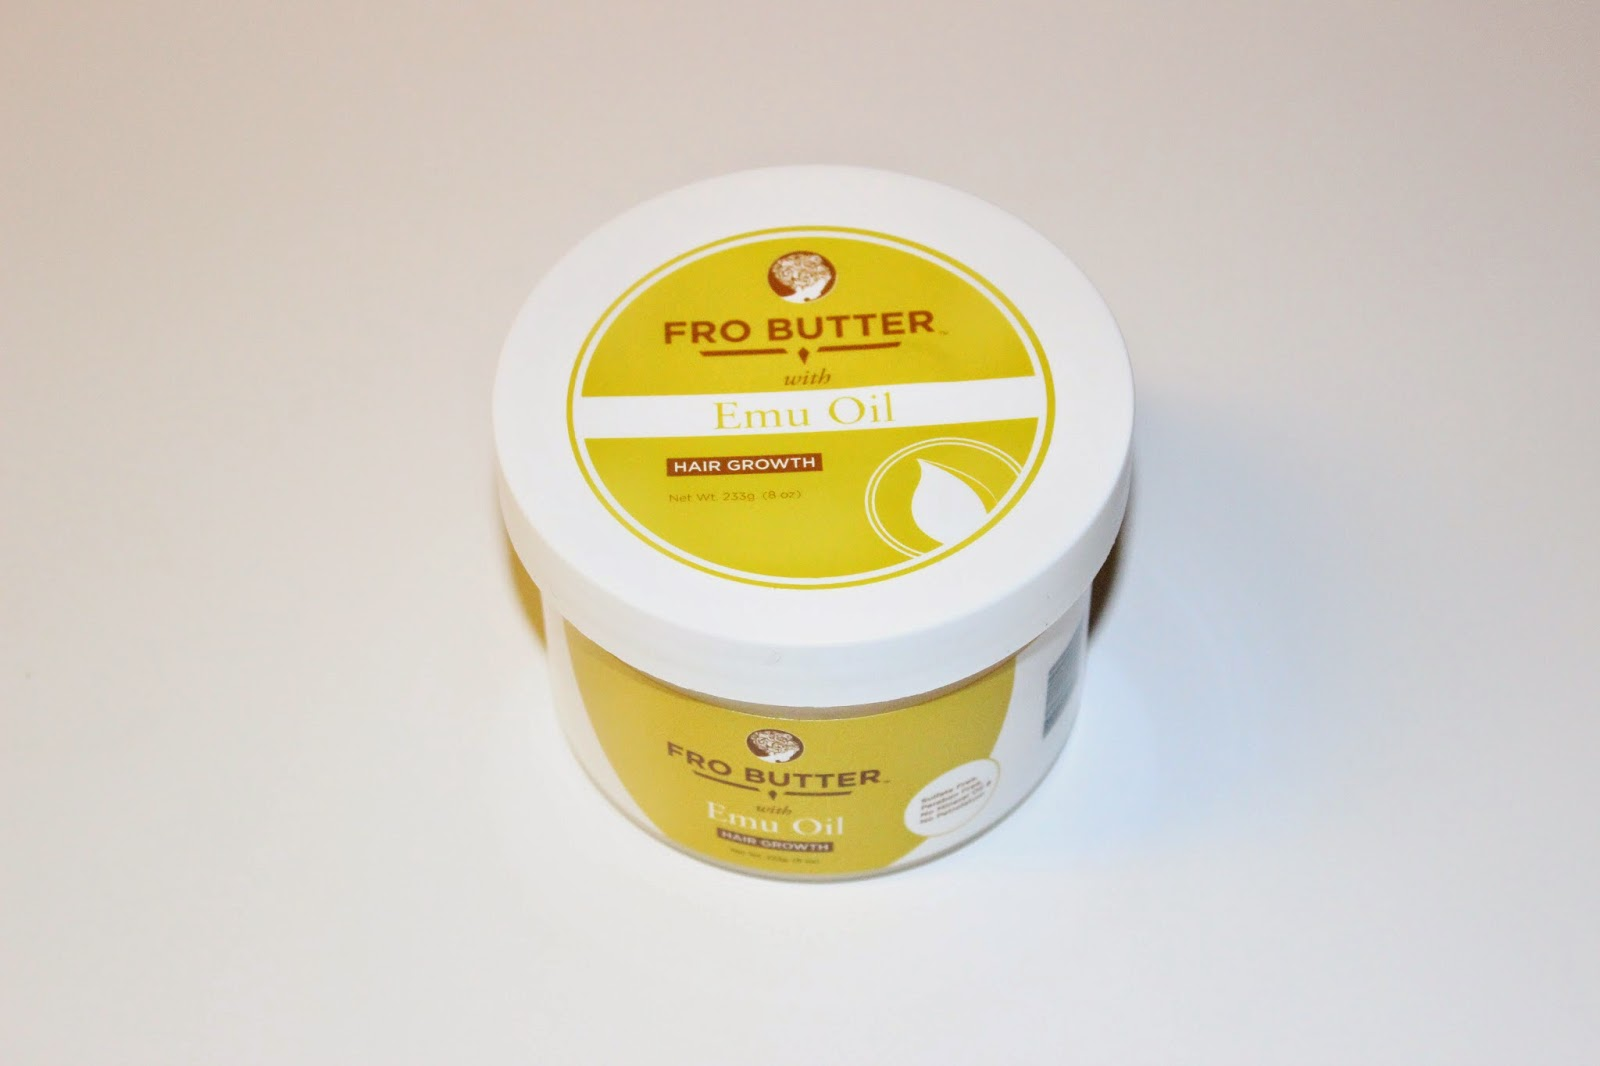 Fro Butter Emu Oil